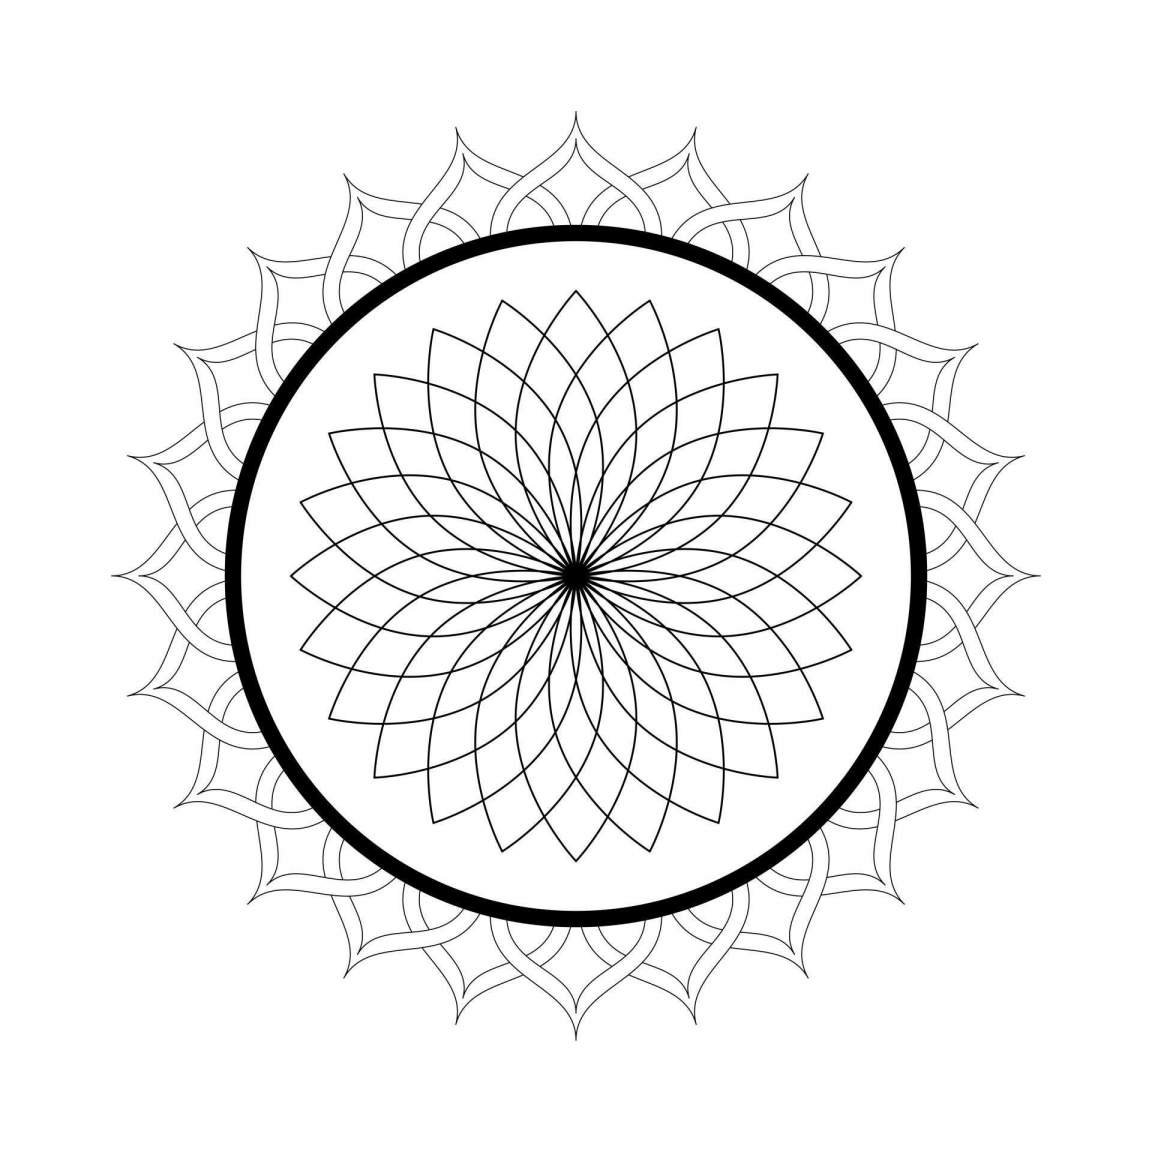 free mandalas to print and color simple inspiring mandala zen anti stress mandalas and to color free mandalas print